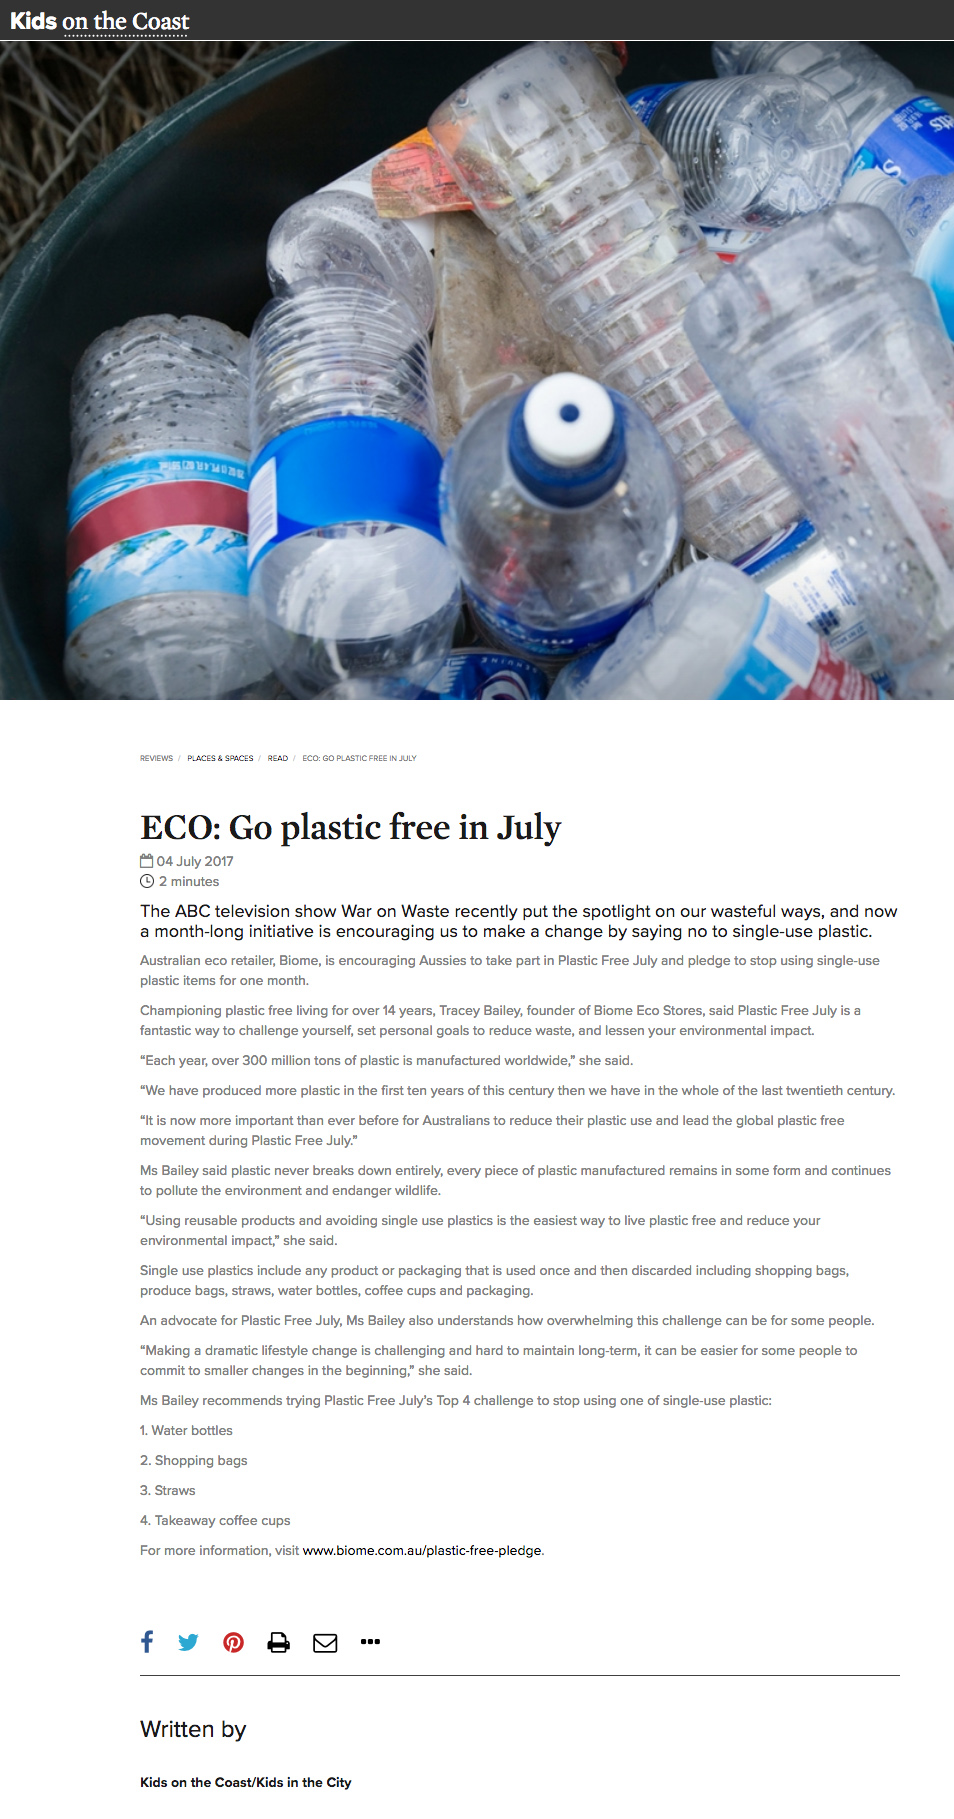 ECO: Go plastic free in July